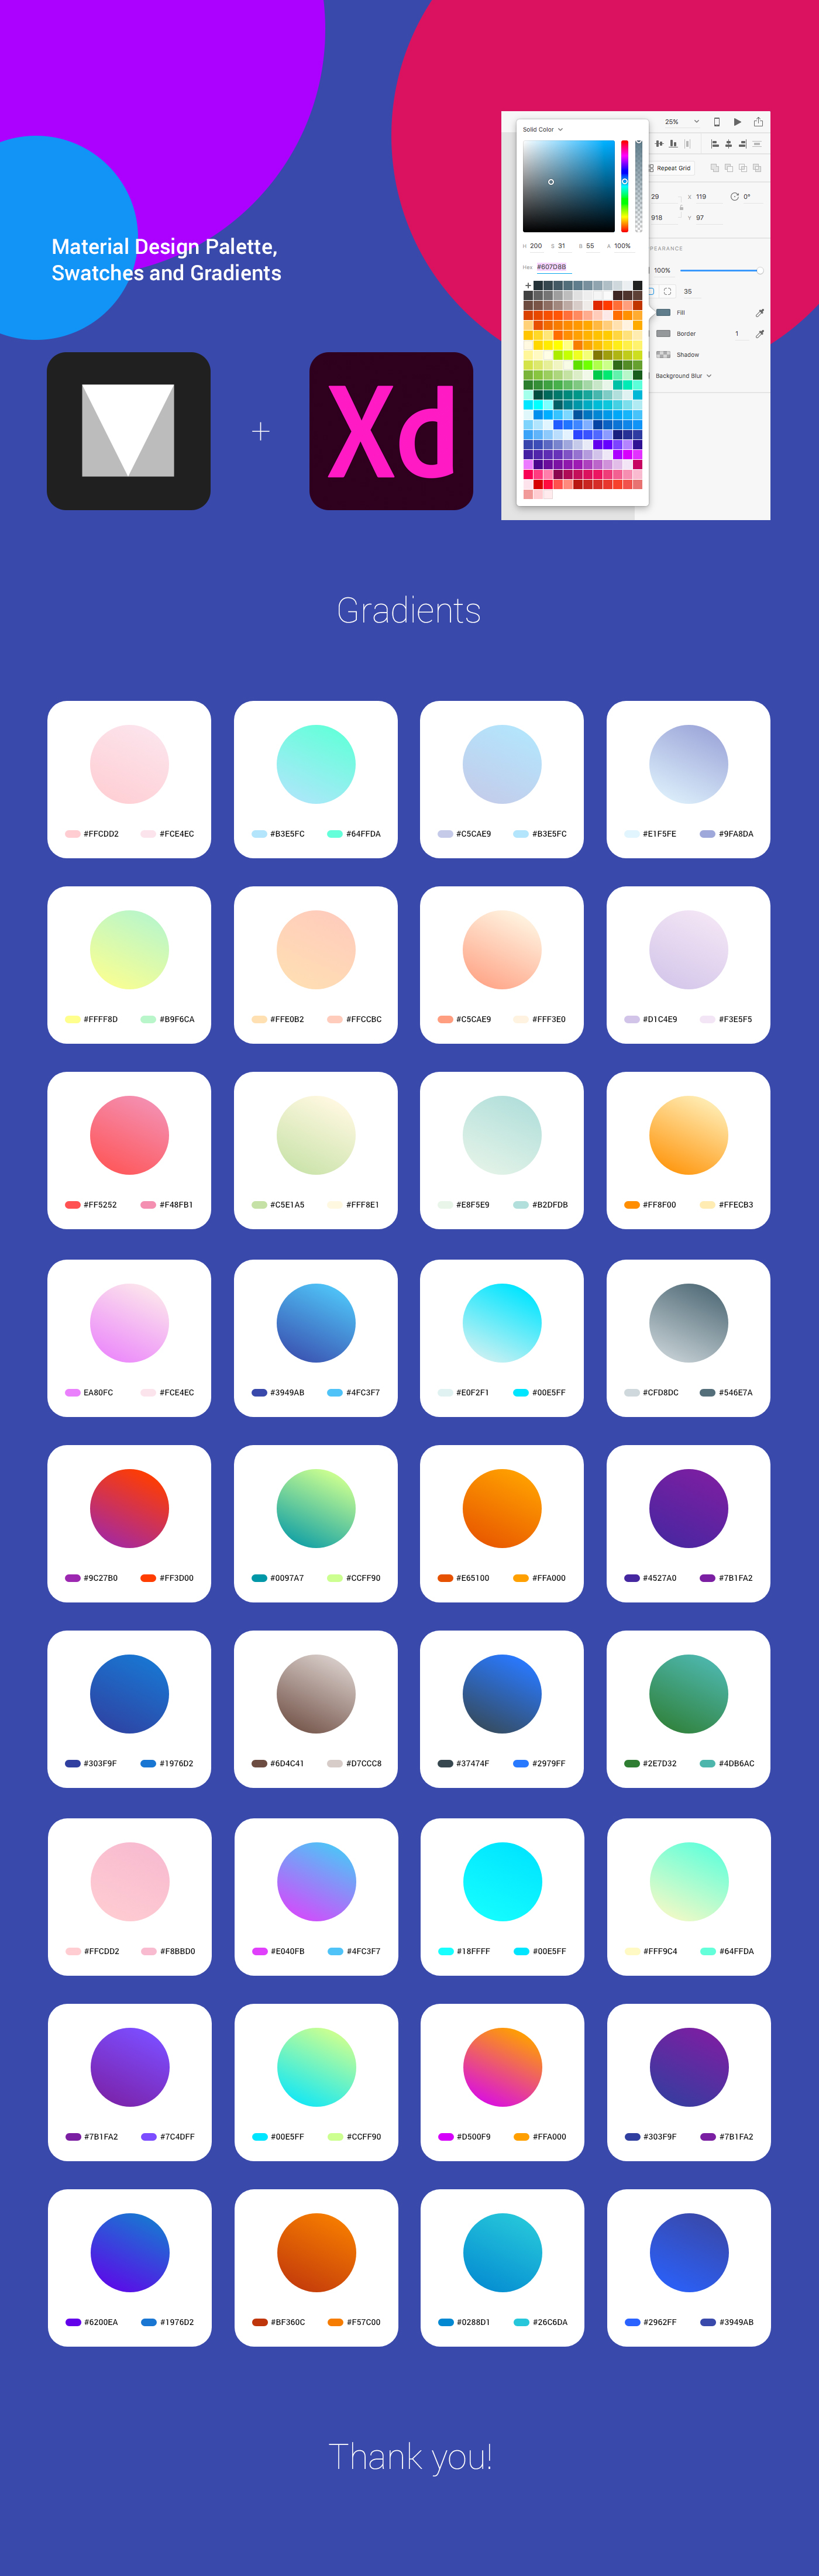 material design cards ux UI palette swatches gradients adobexd MadeWithAdobeXd